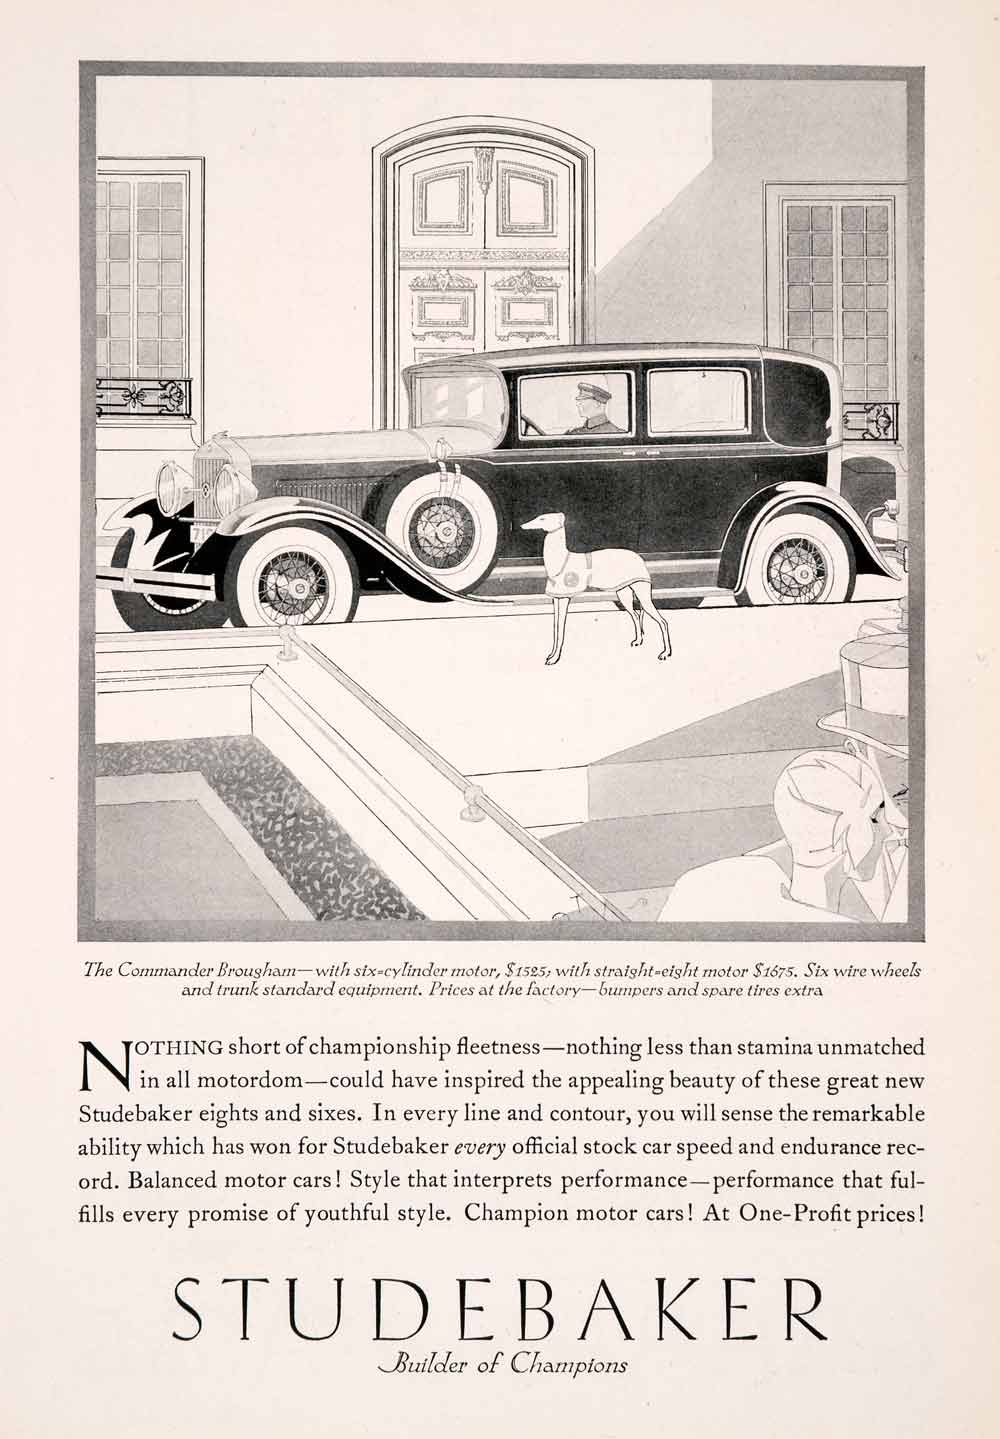 1929 Ad Antique Studebaker V6 Commander Brougham Car Laurence Fellows Art NGM3